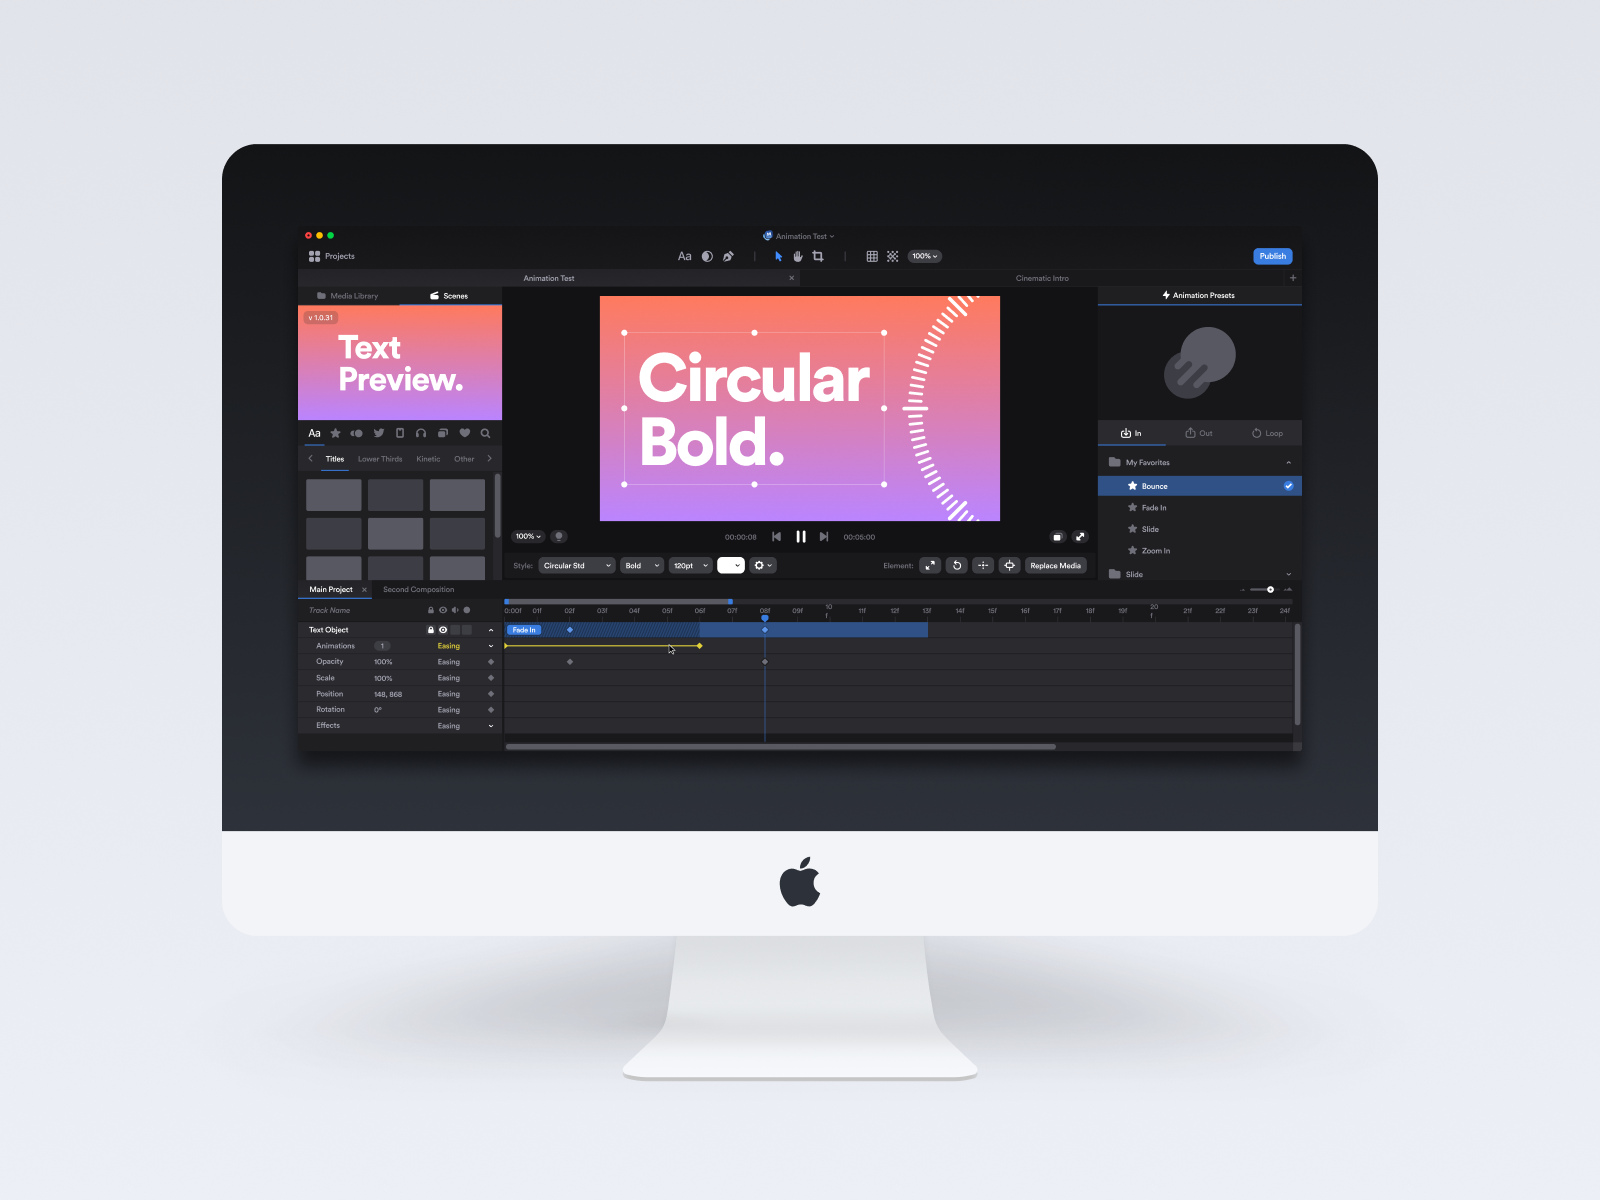 Motion Effects Editor UI